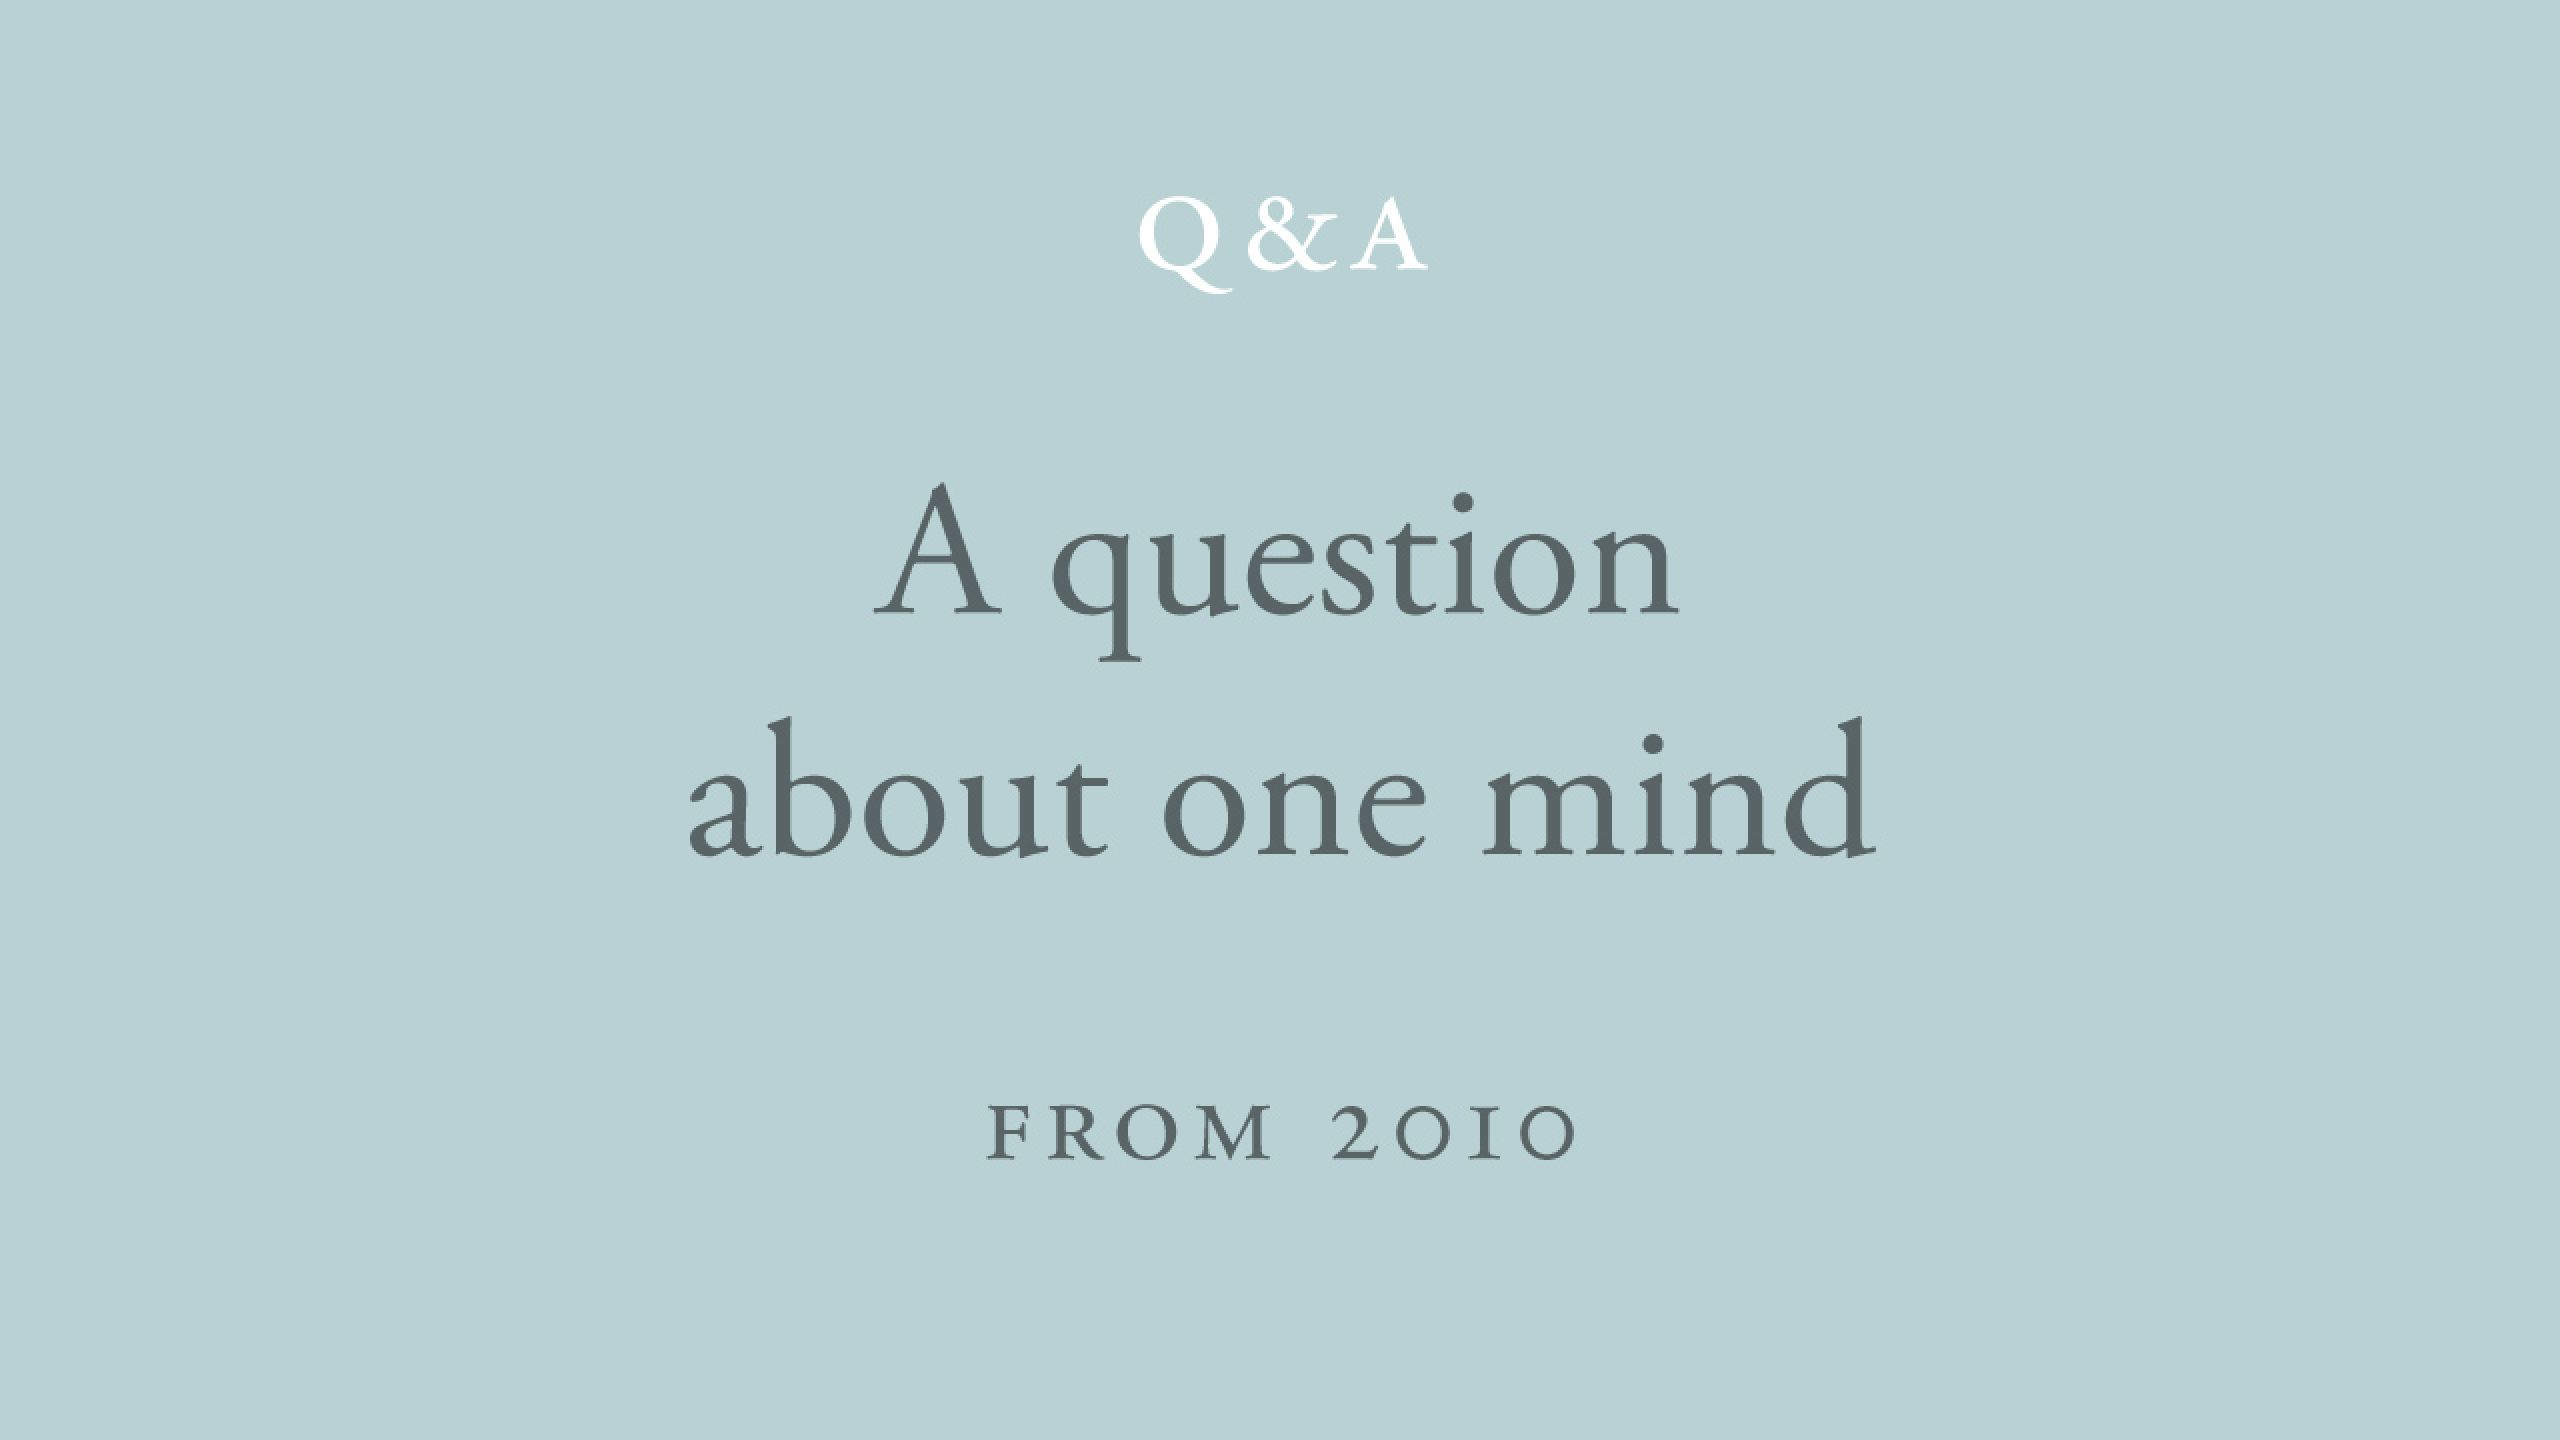 Is our experience proof that consciousness experiences itself only through one mind?